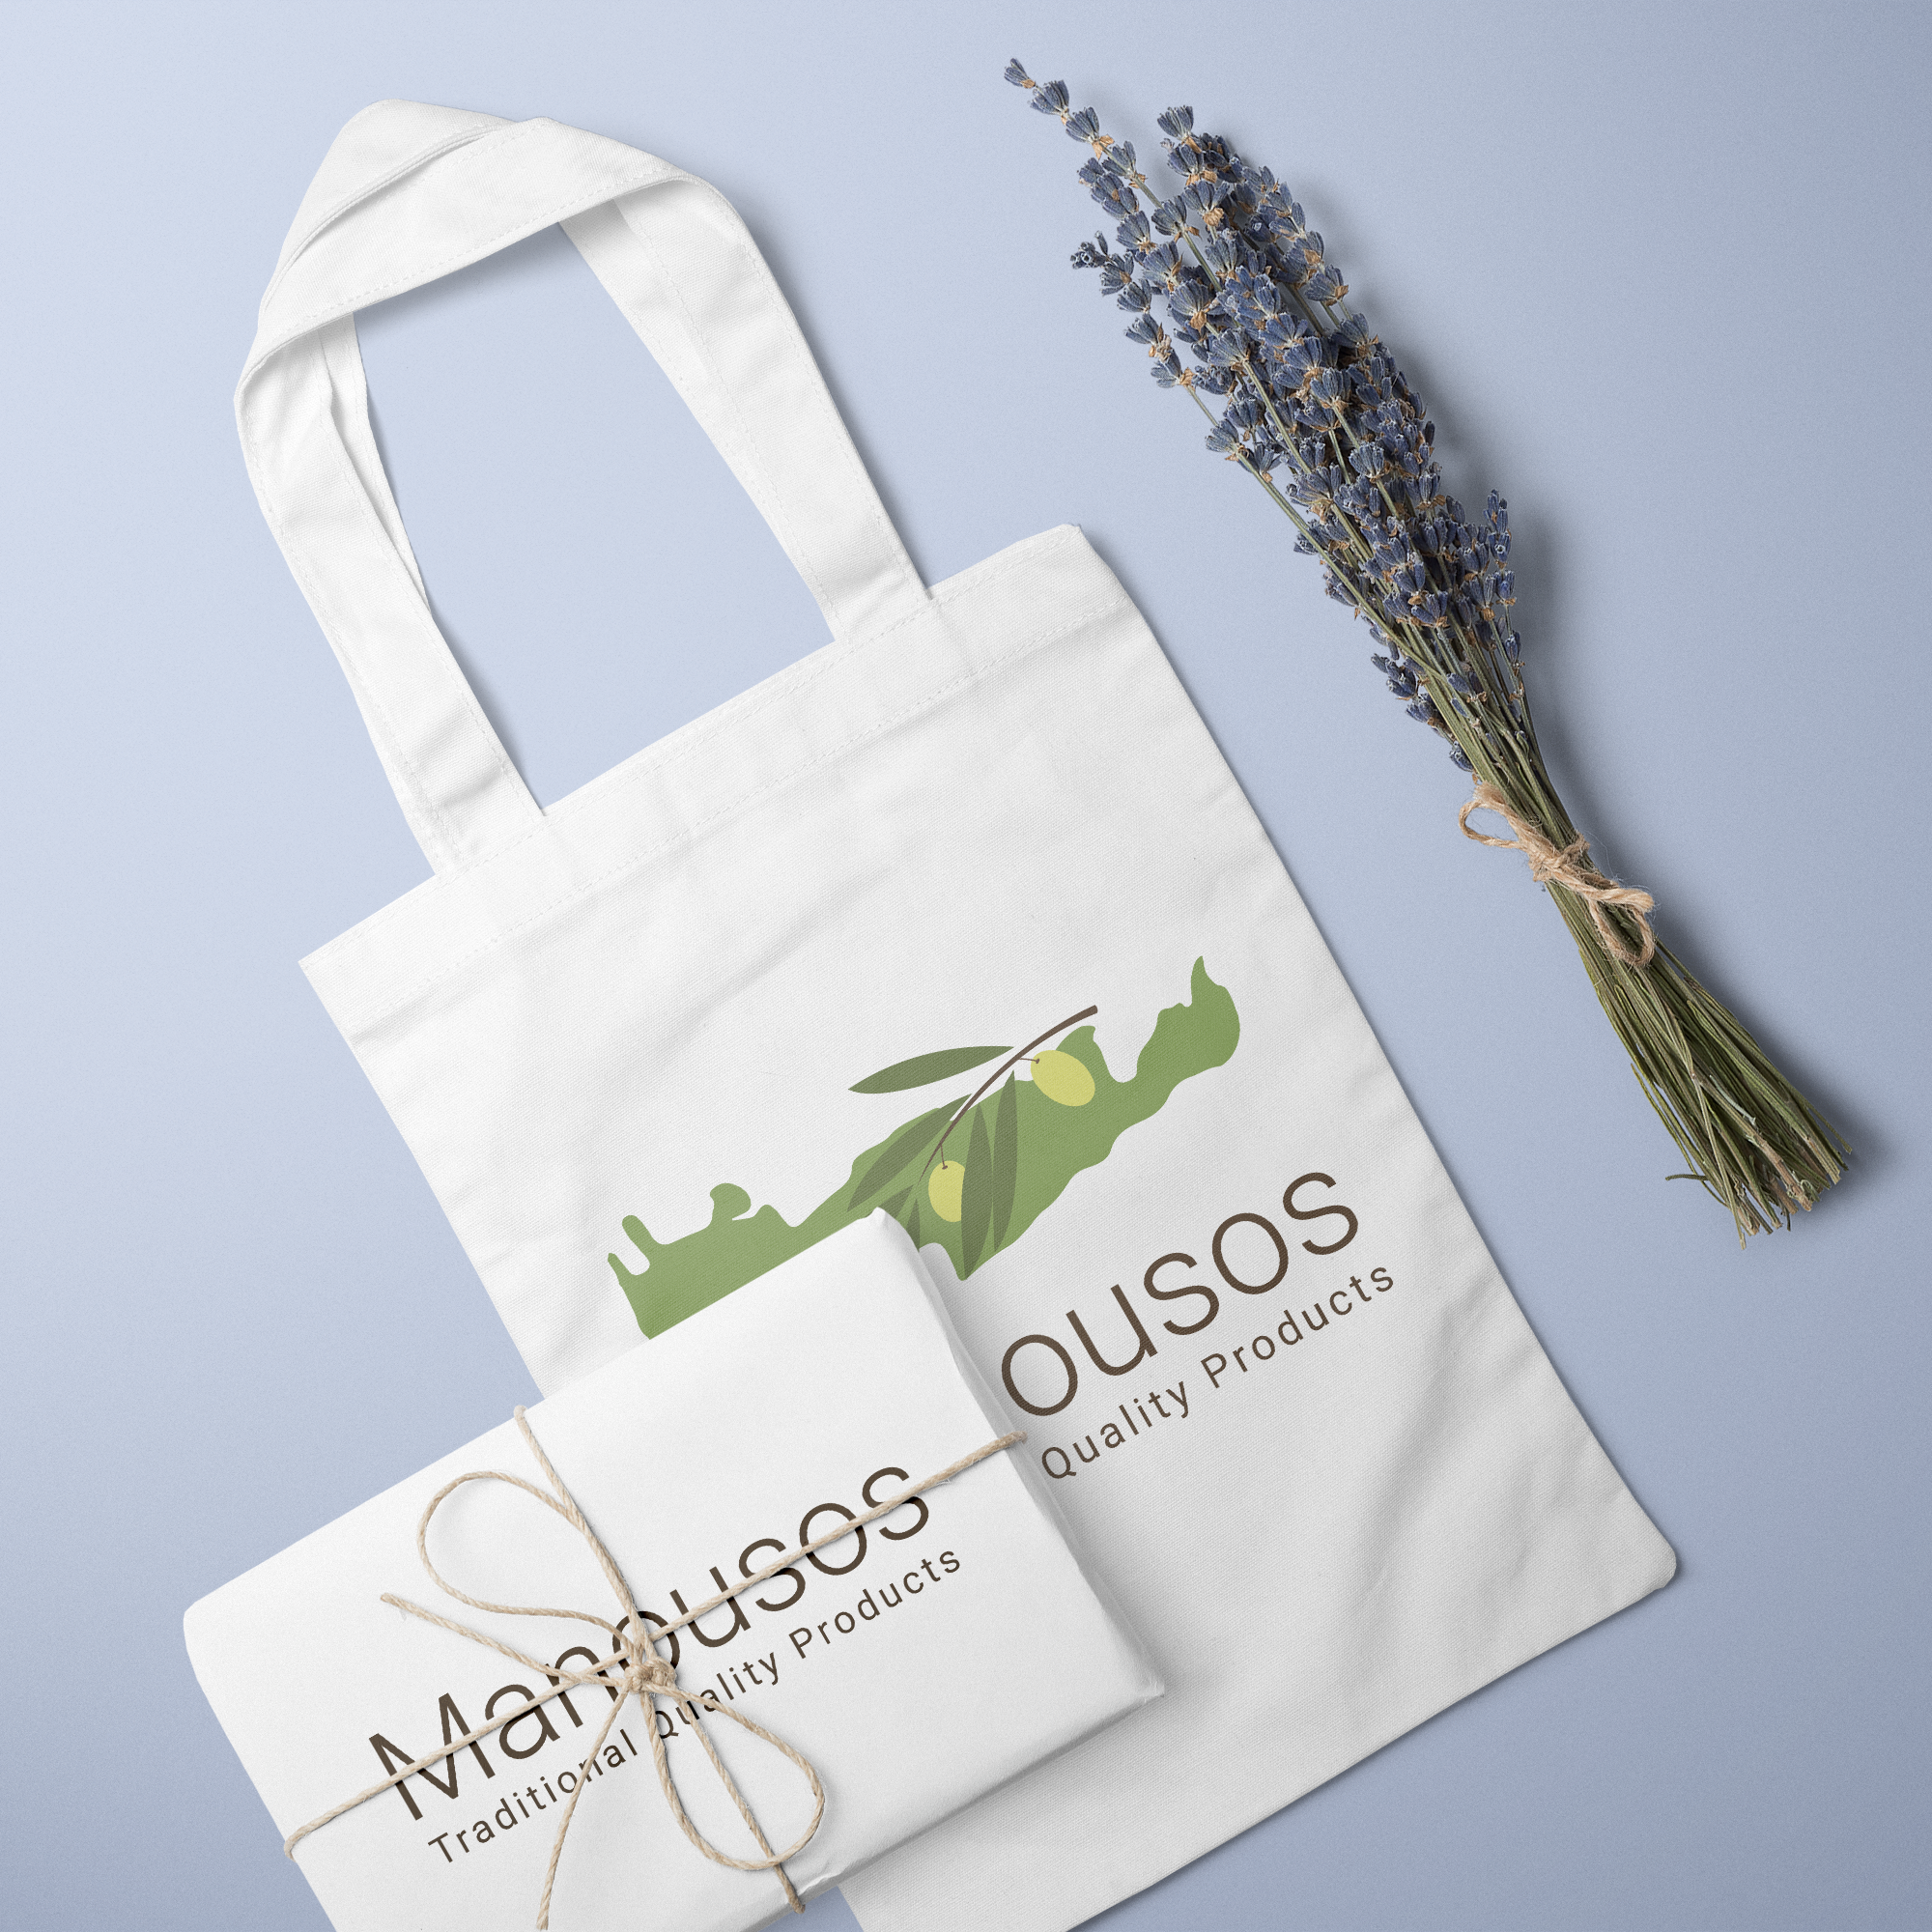 Manousos logo on a tote bag and a box